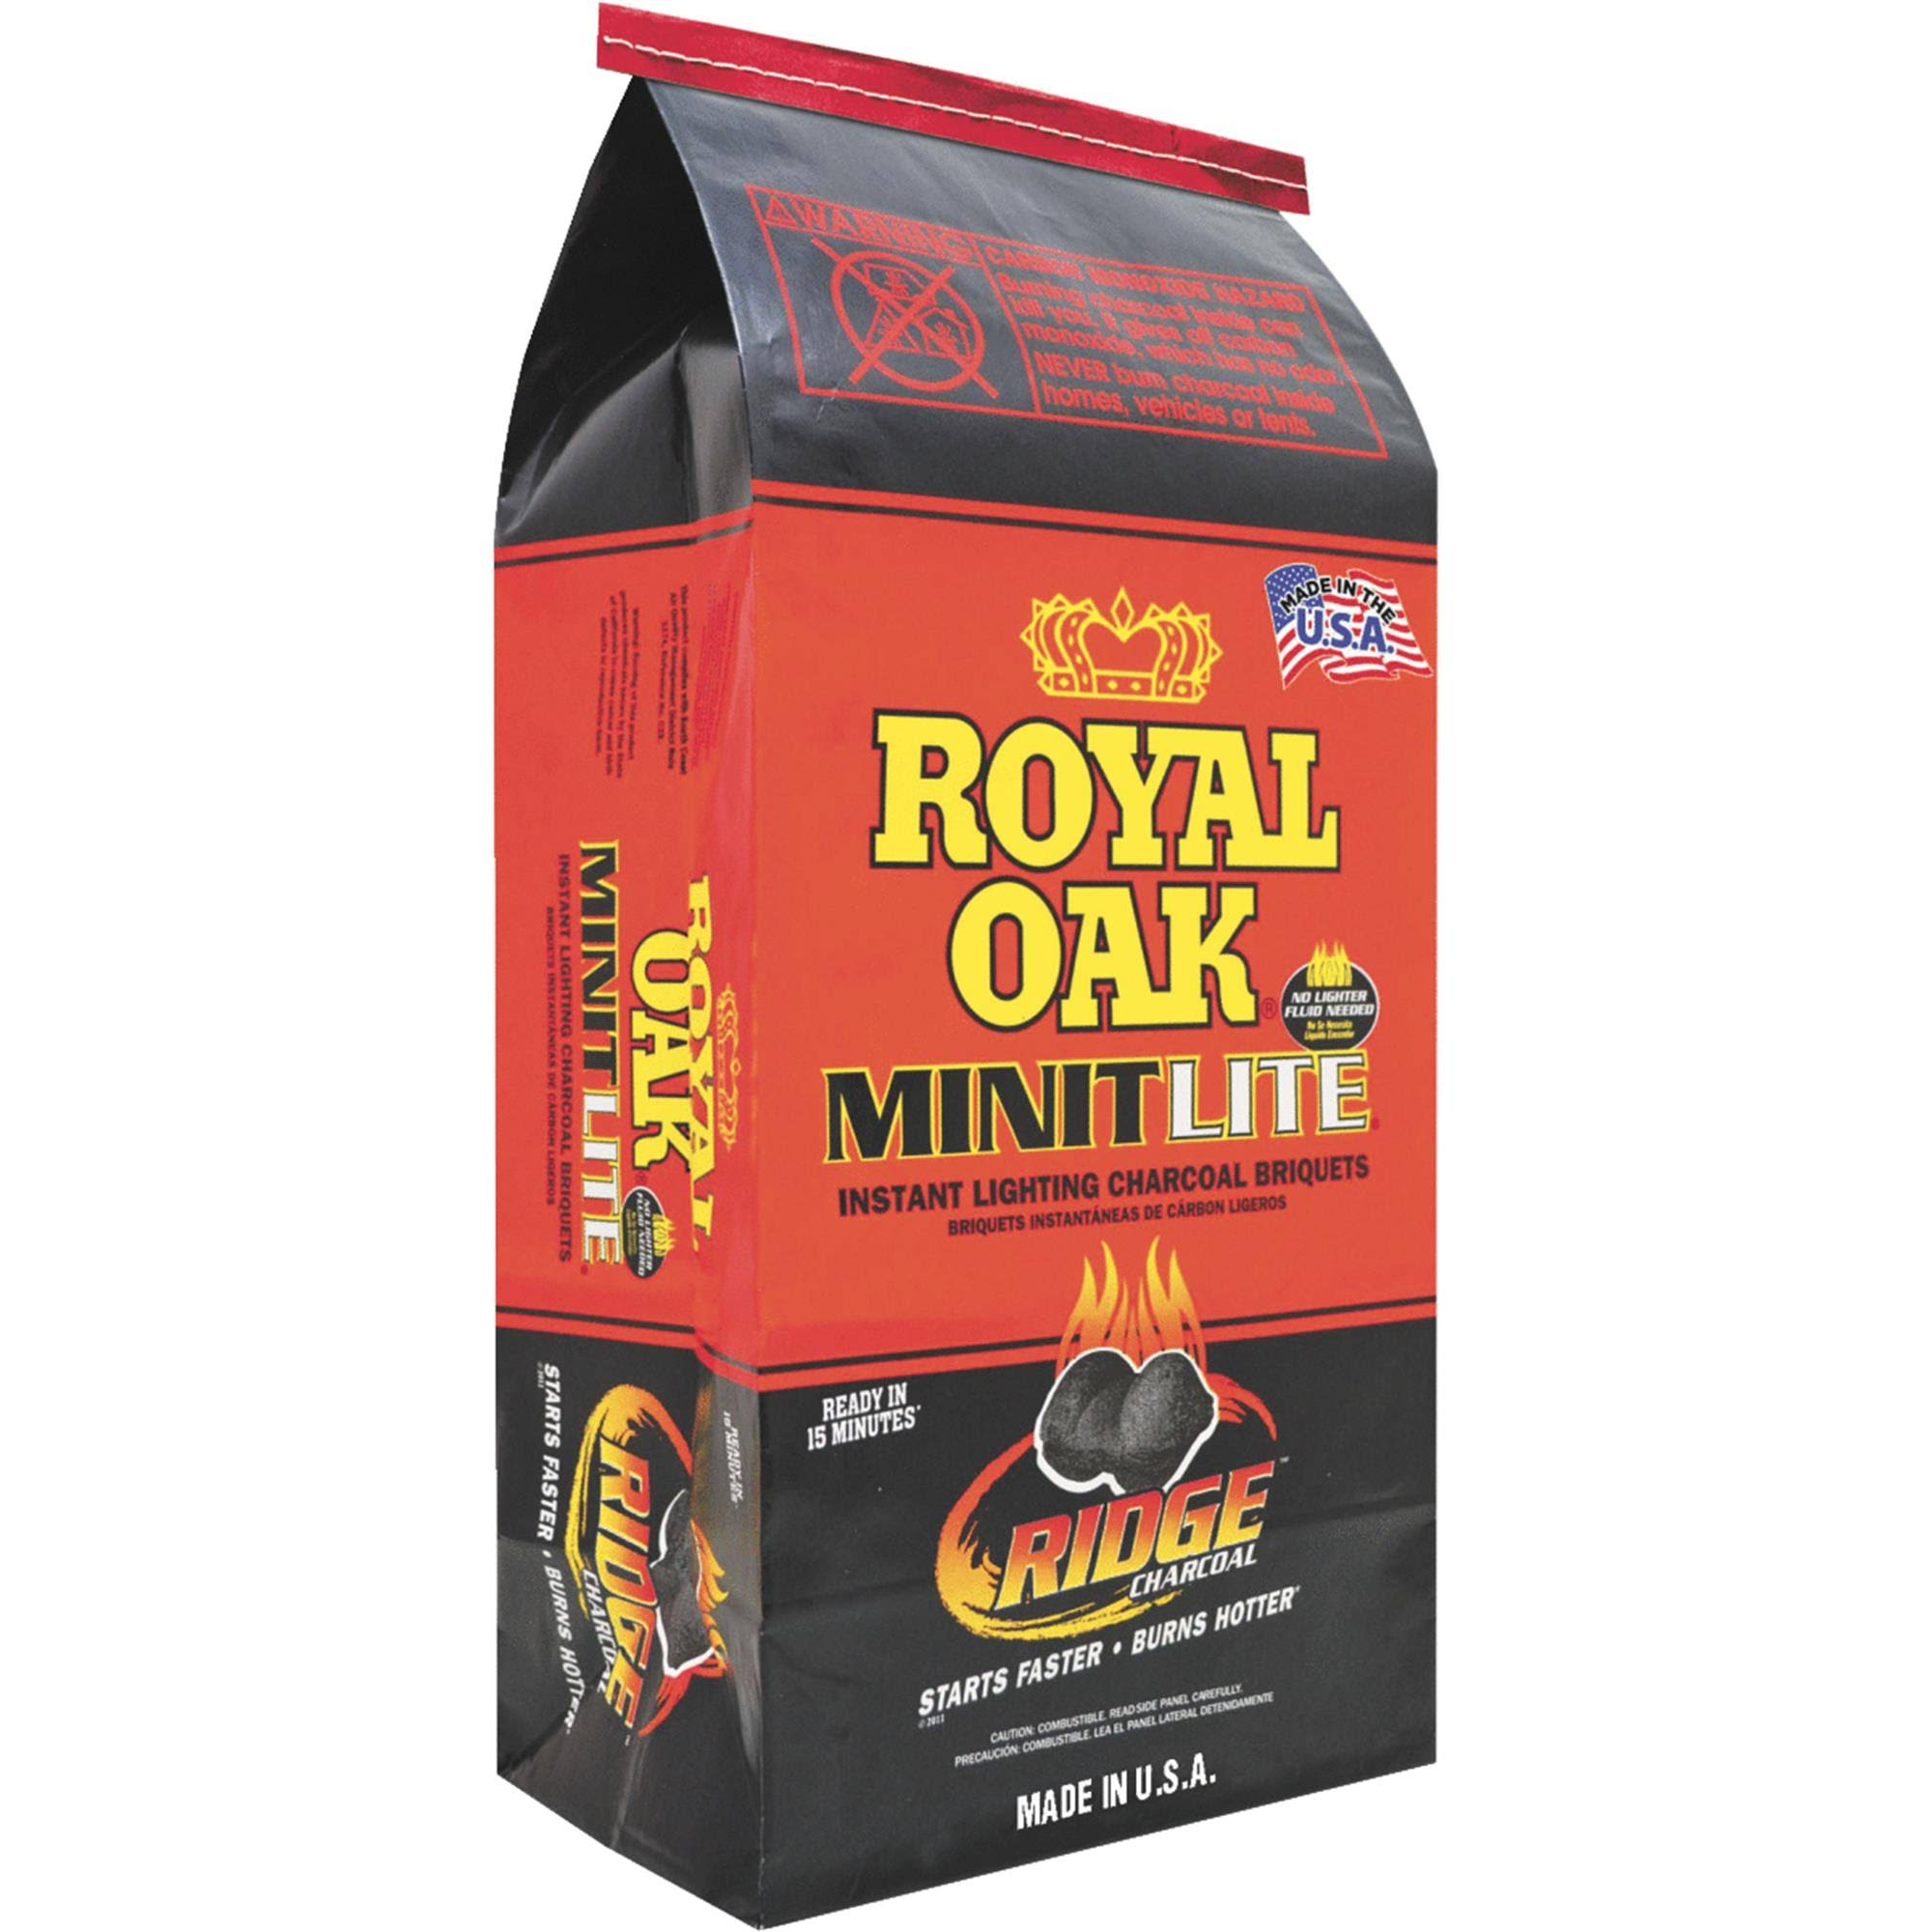 Royal Oak Minit Lite Charcoal Briquets - 6.7lbs